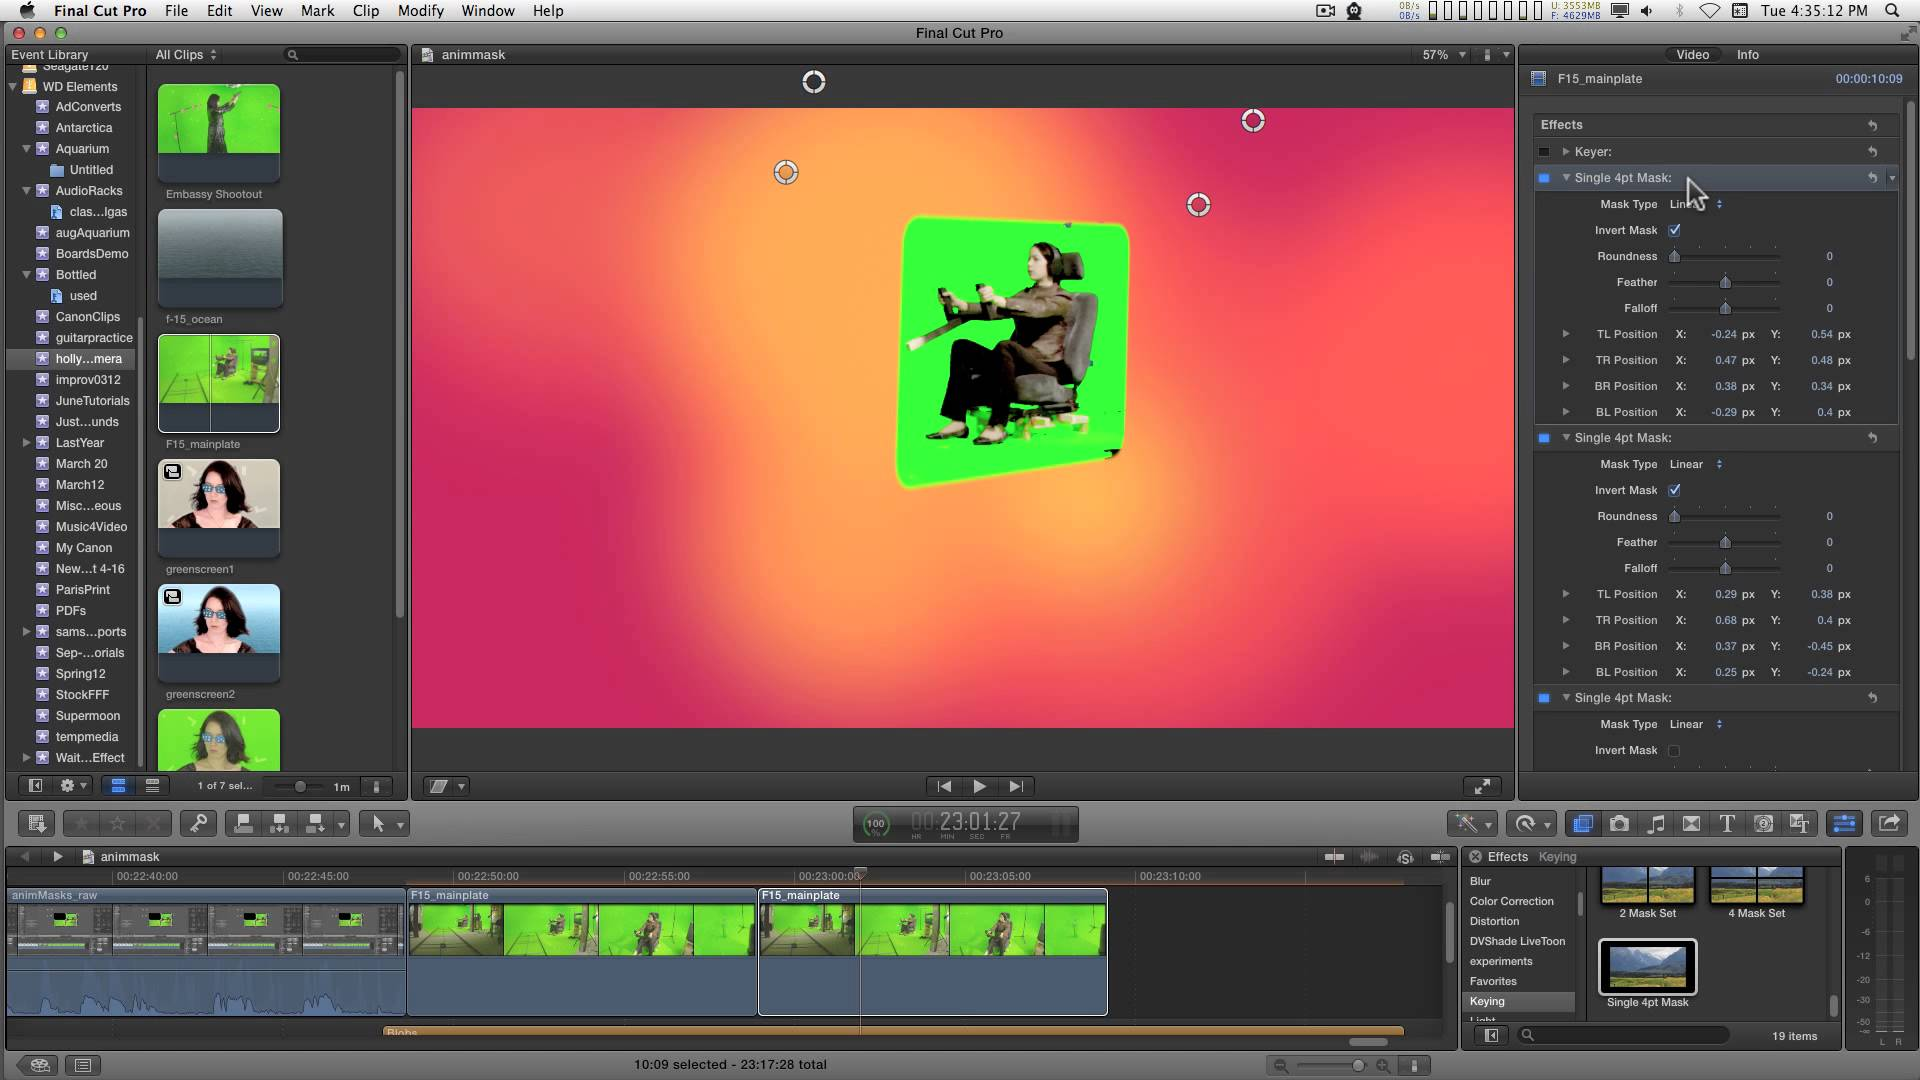 Download the Latest Version of Final Cut Pro for Free Today